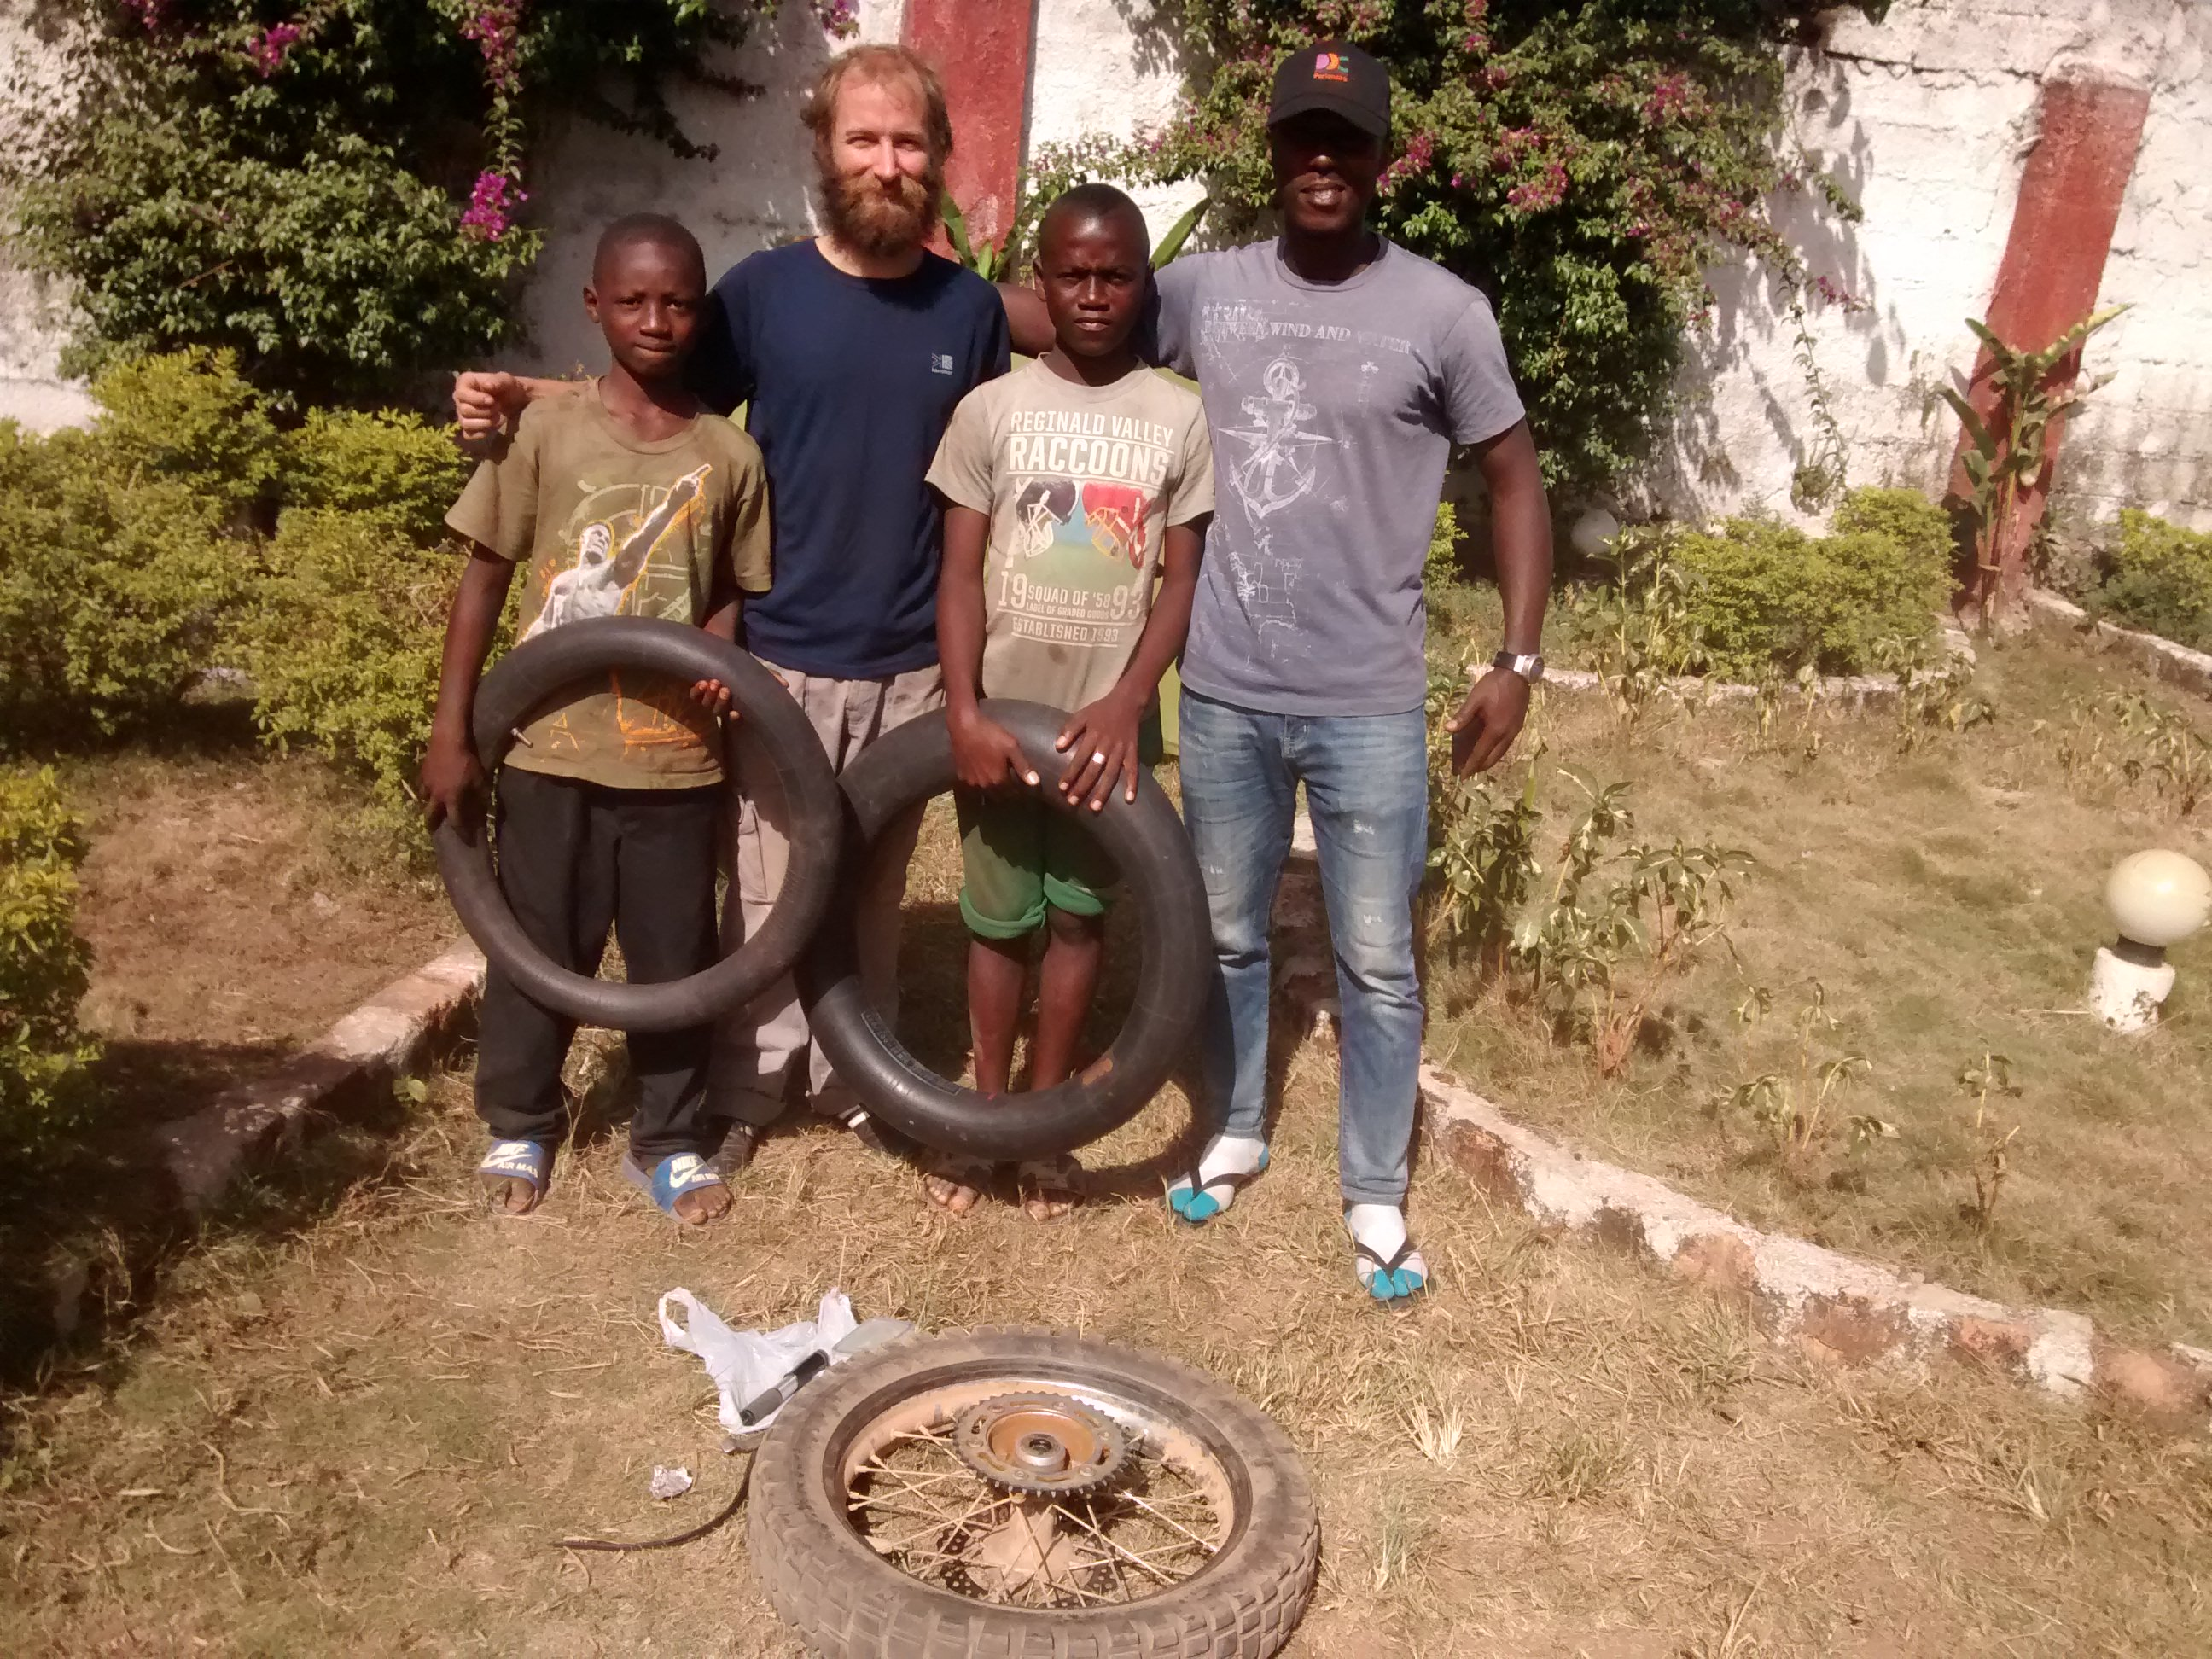 The people who helped fix my punctures and also purchase new inner tubes in Macenta, Guinea.